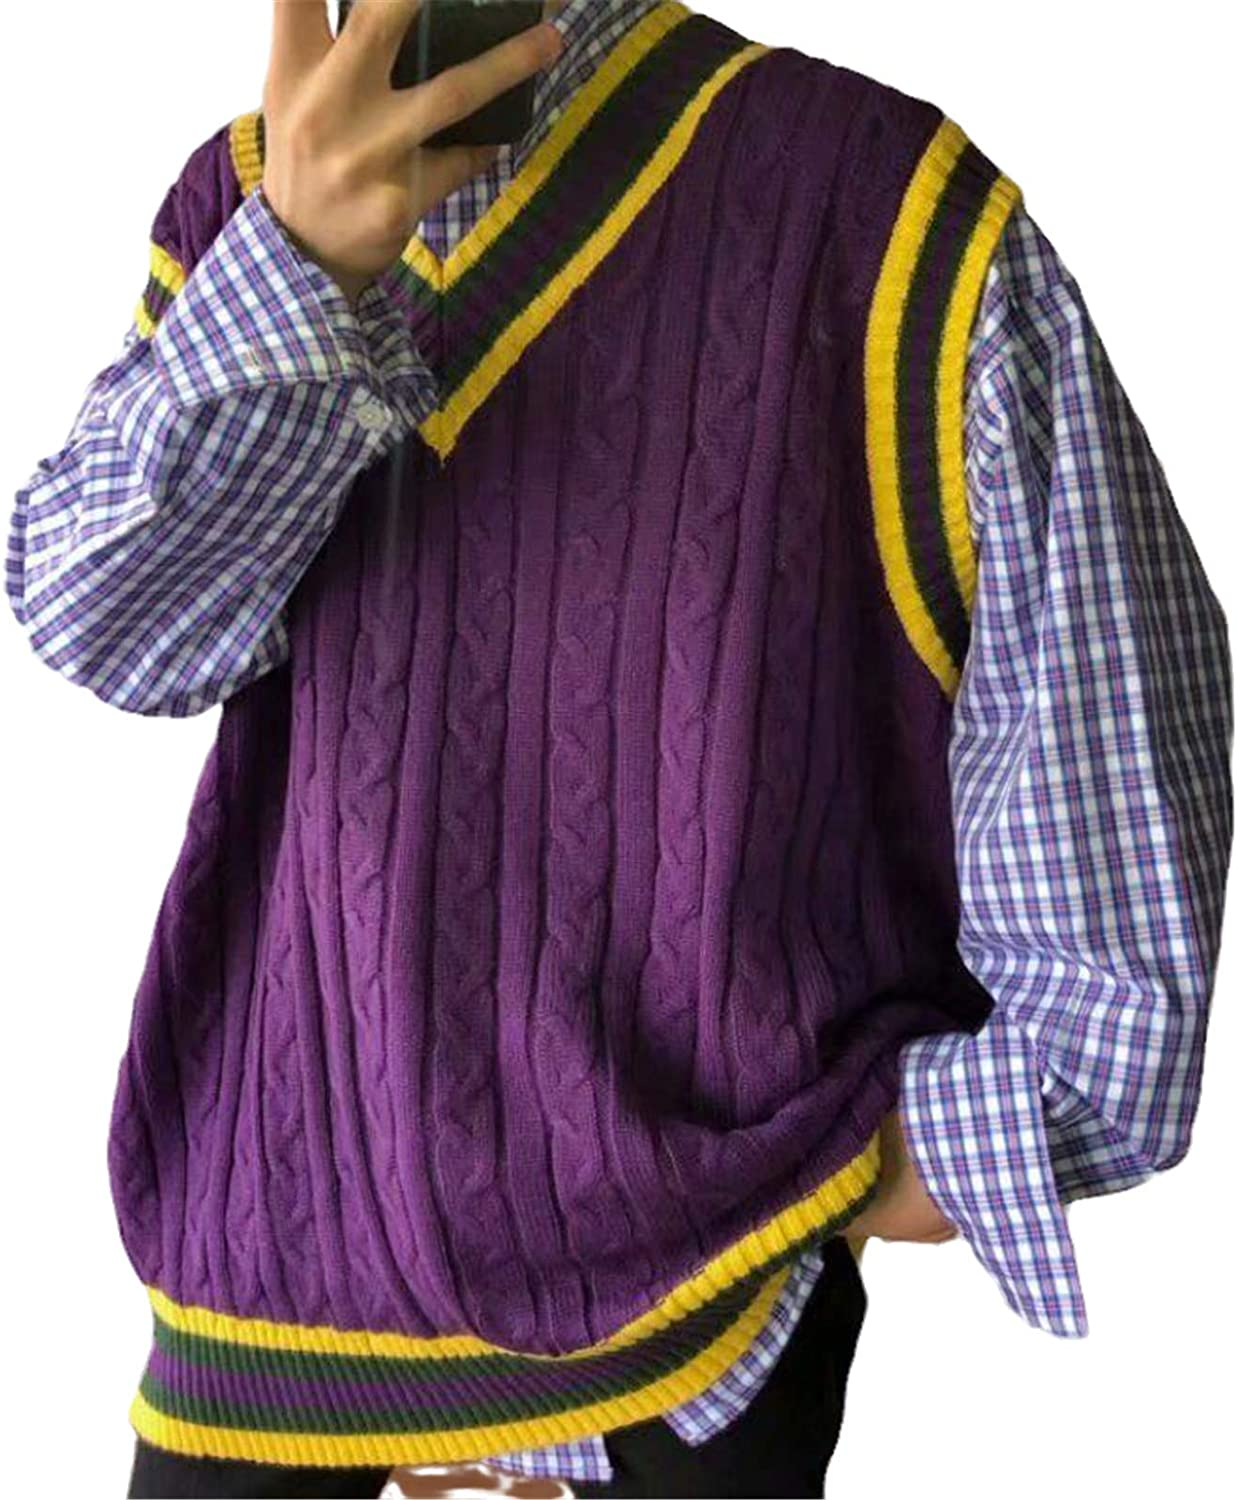 Sweater Vest Men Sale Super beauty product restock quality top! price Loose V-Neck Autumn Sleevel Spring Leisure Chic